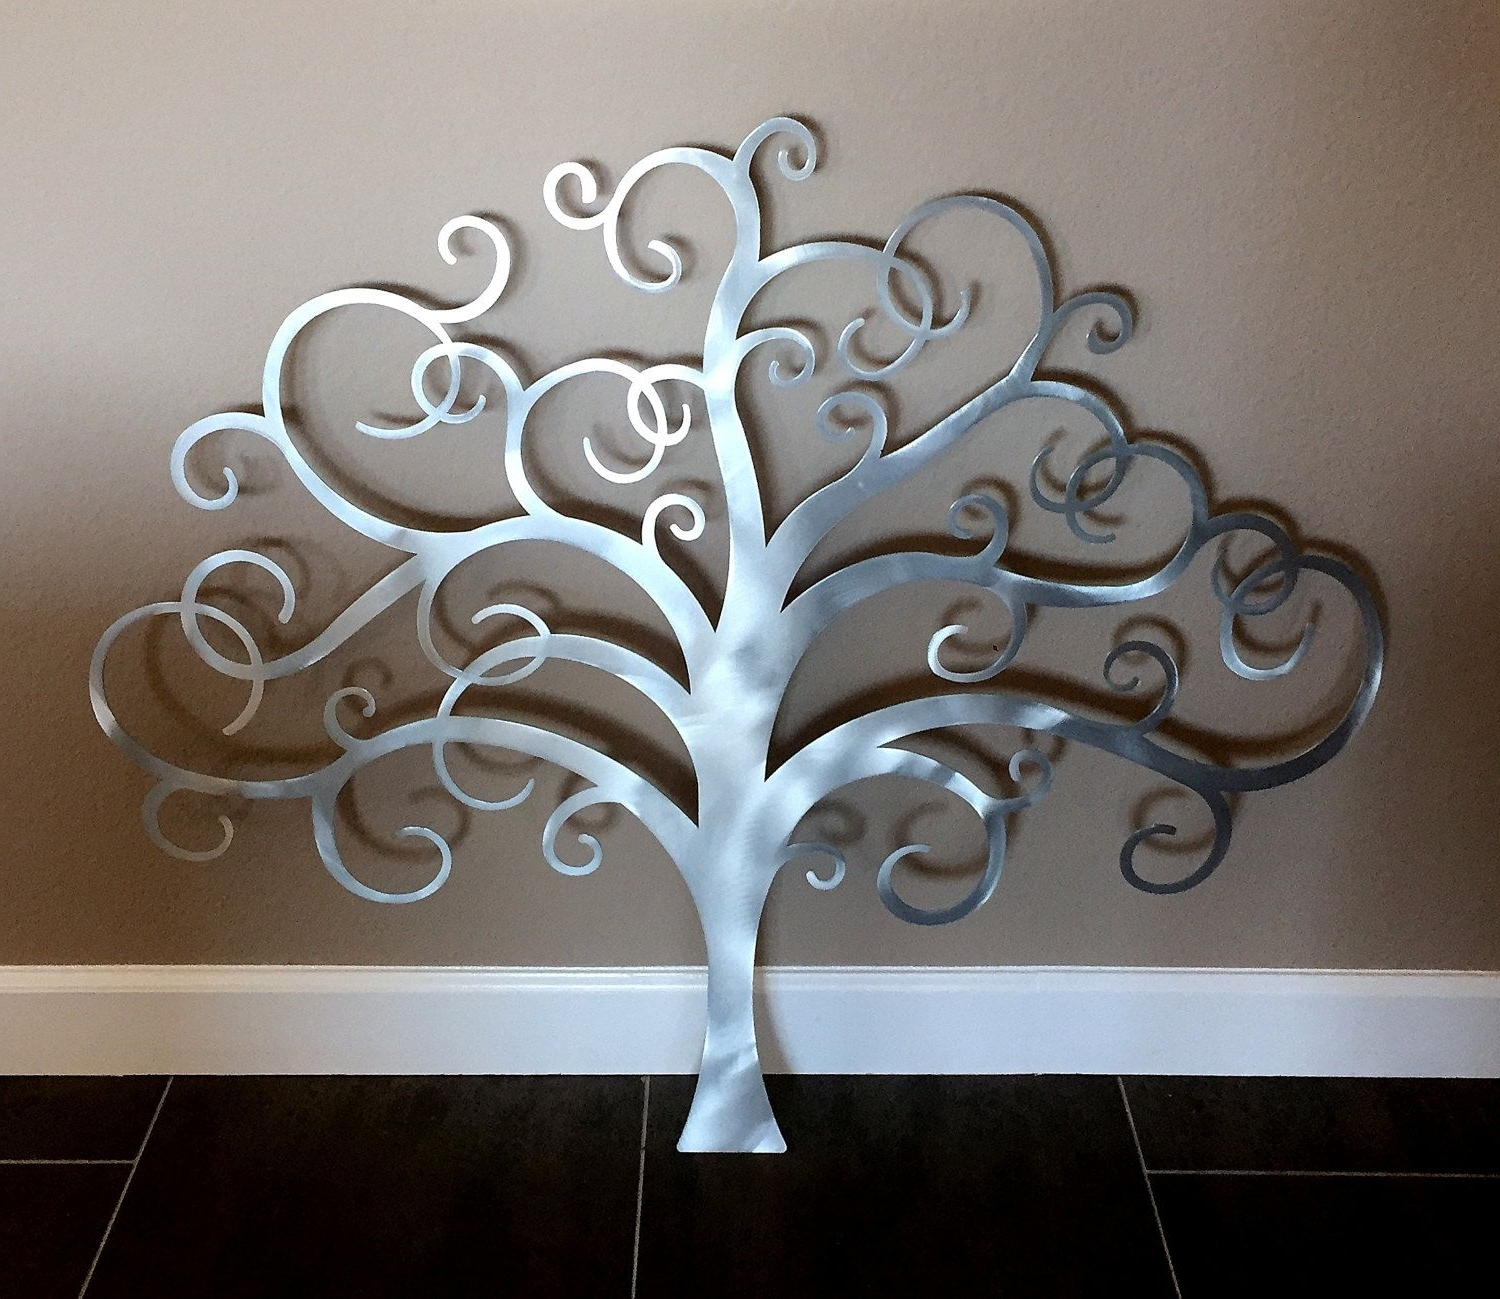 Tree Wall Art Sculpture With Most Up To Date Metal Tree Wall Art, Tree Of Life Wall Decor, Metal Tree Wall Art (View 15 of 15)